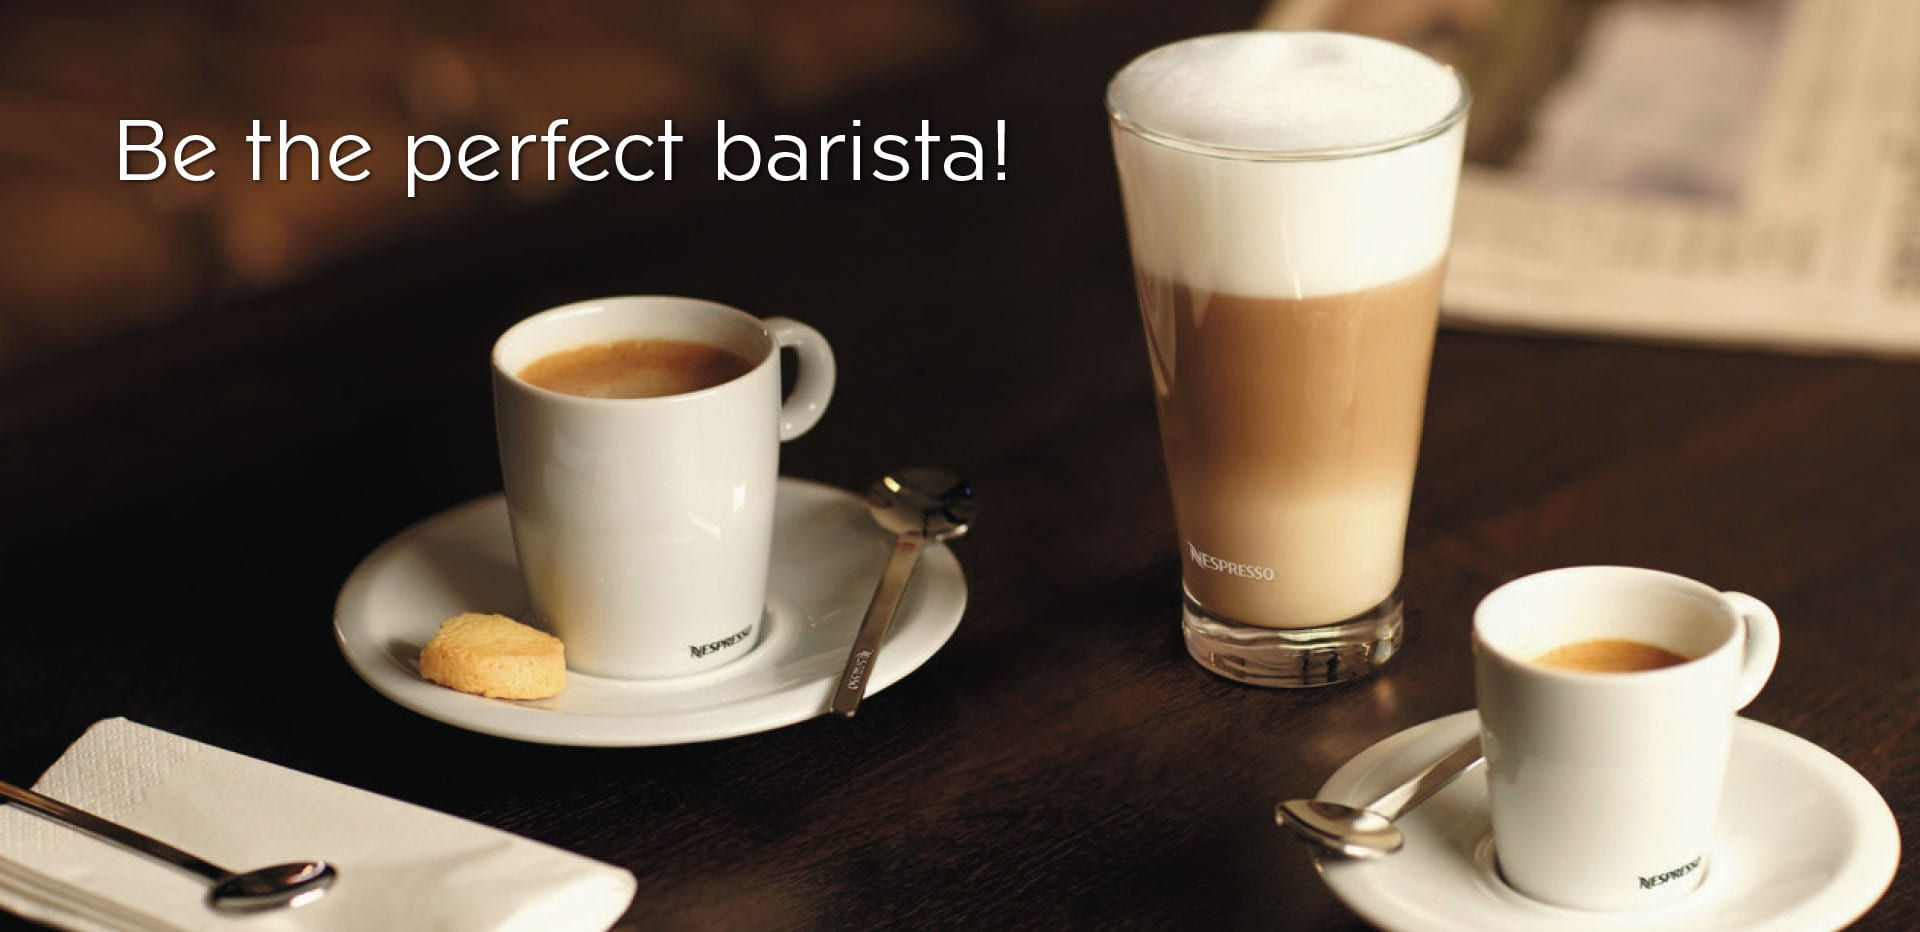 Nespresso Professional - Be the perfect barista